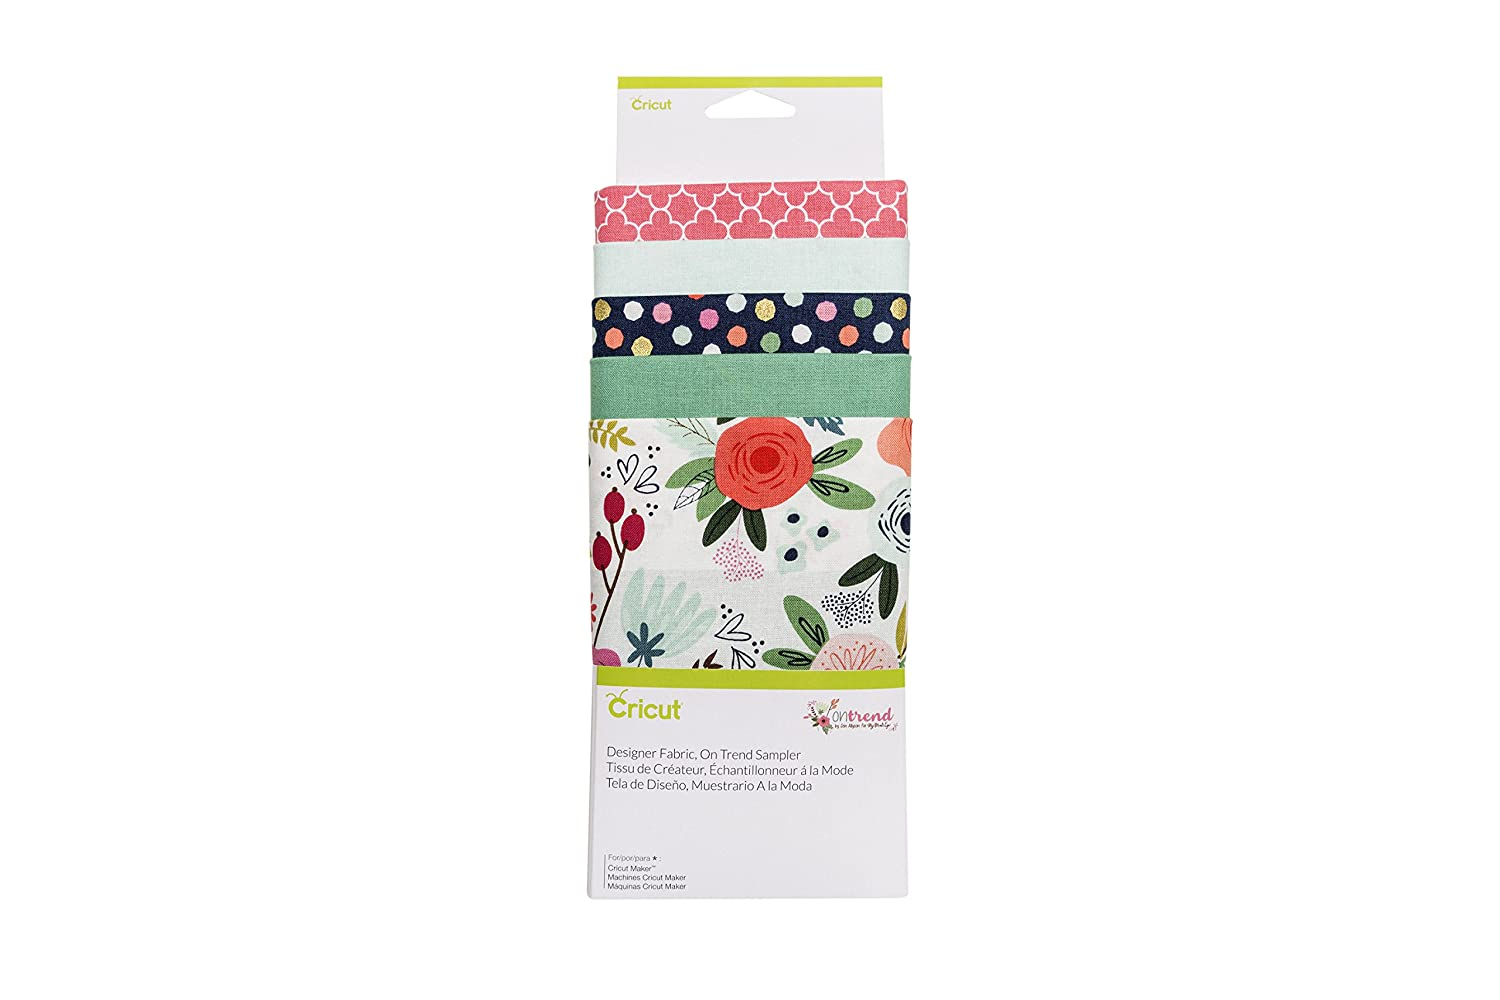 Cricut Designer Fabric Sampler, on Trend 2004213